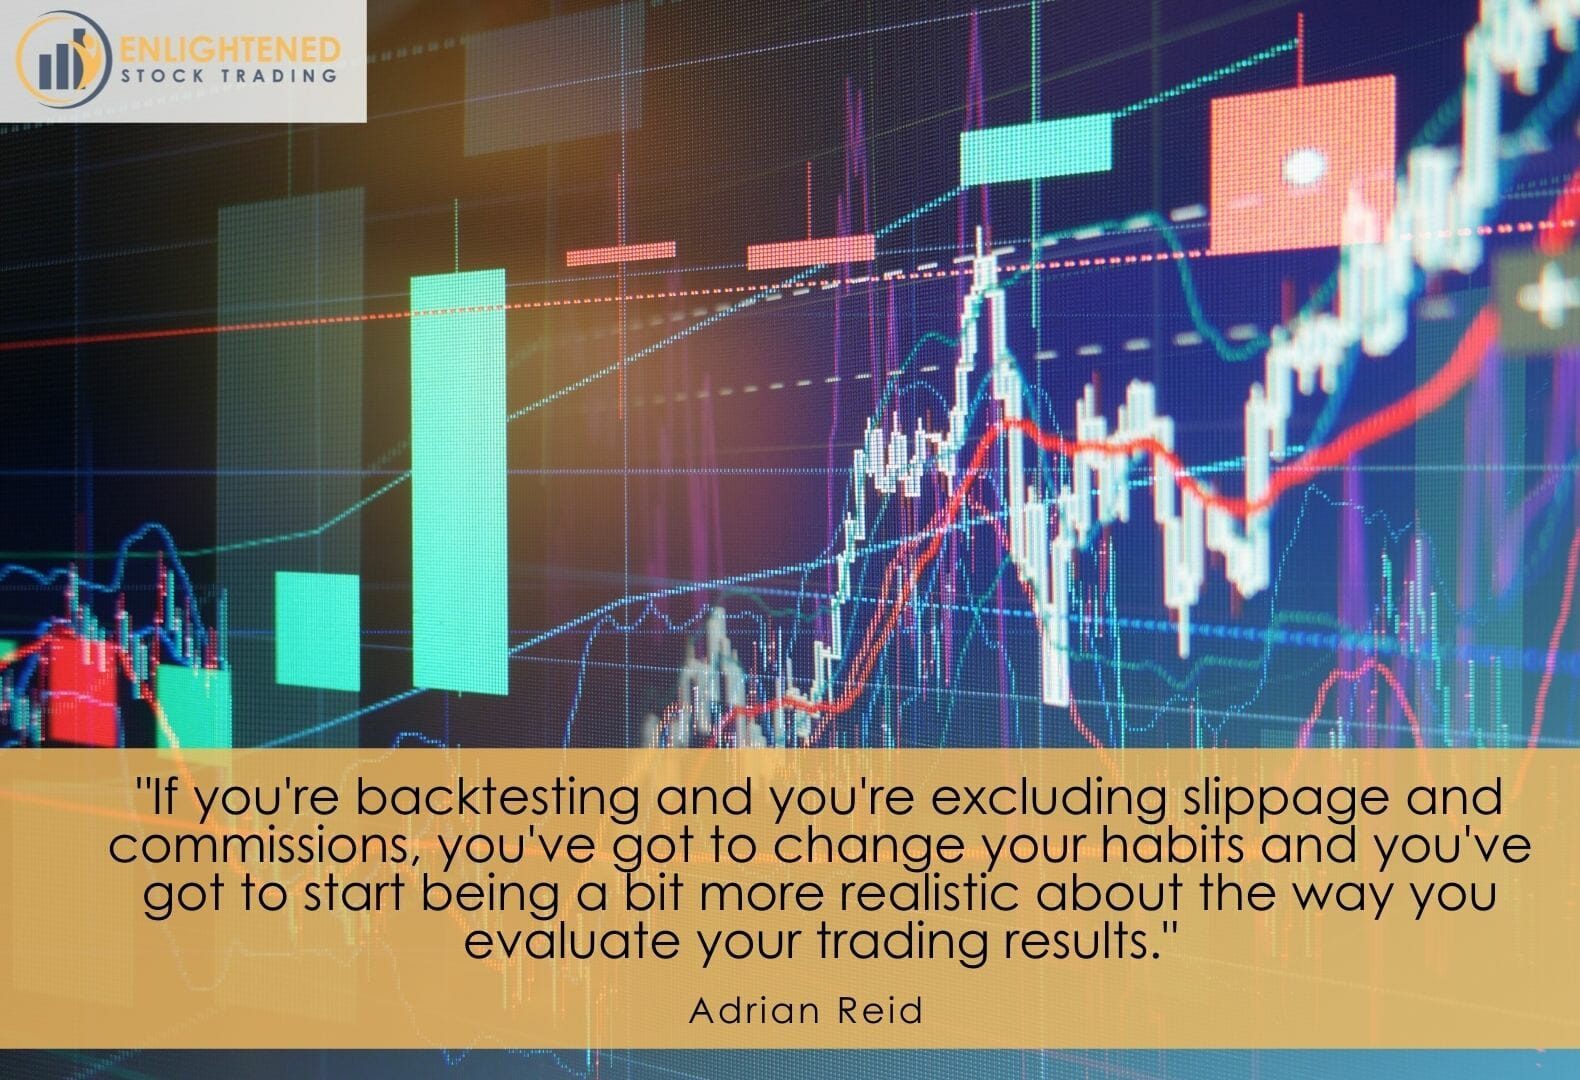 Backtest your trading system with slippage and commission to give more realistic trading results